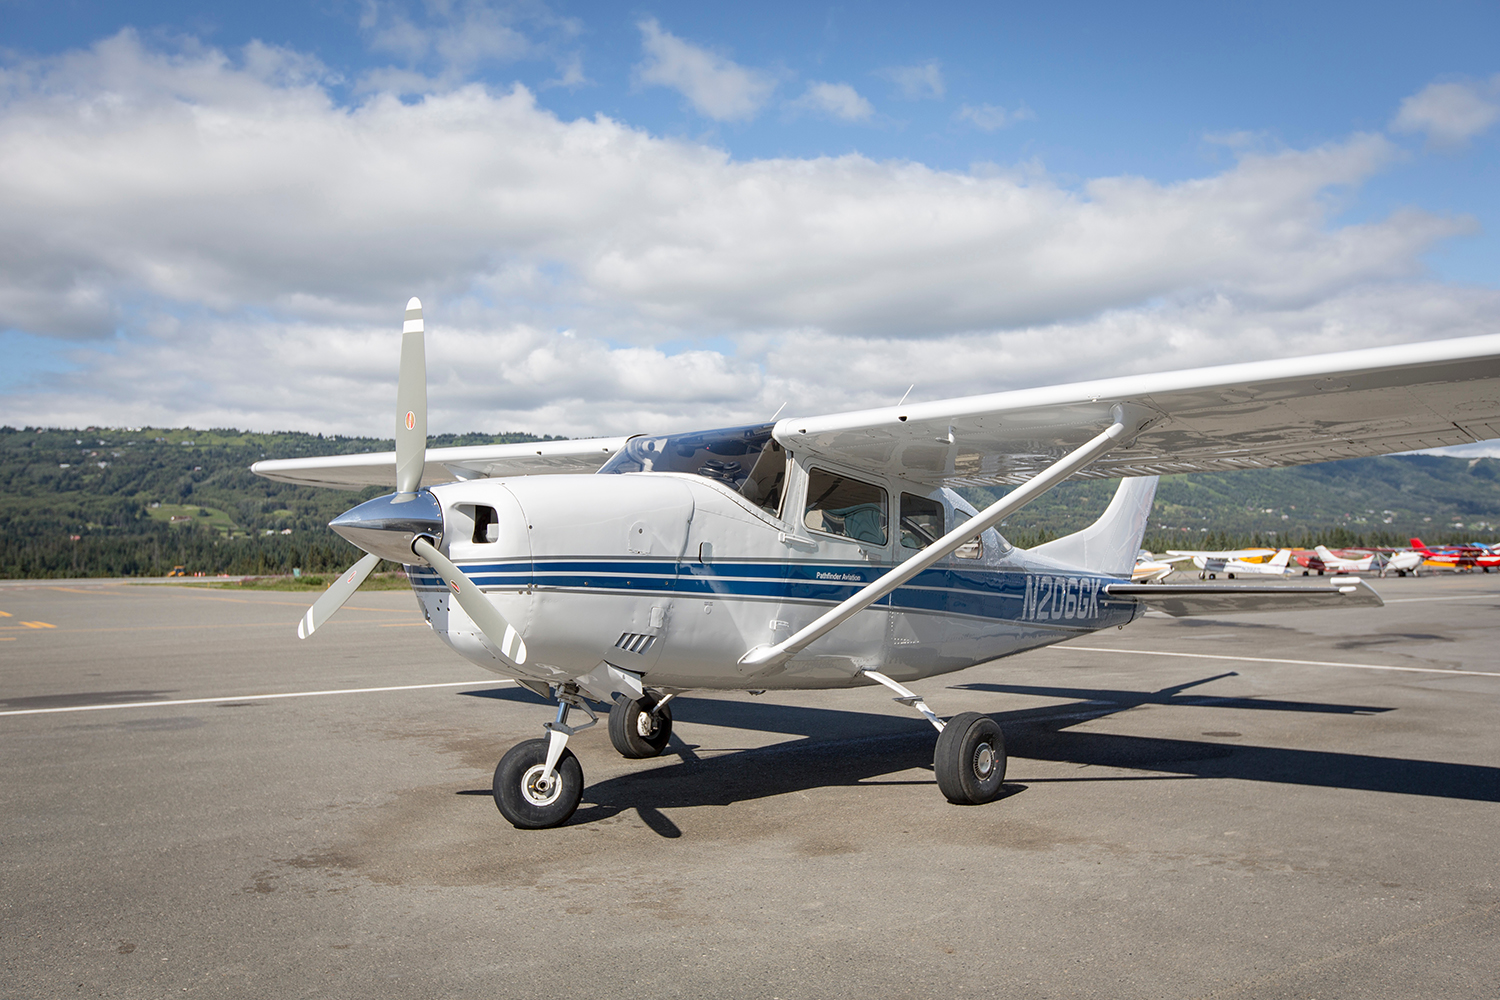 Cessna 206 - Descriptive Copy